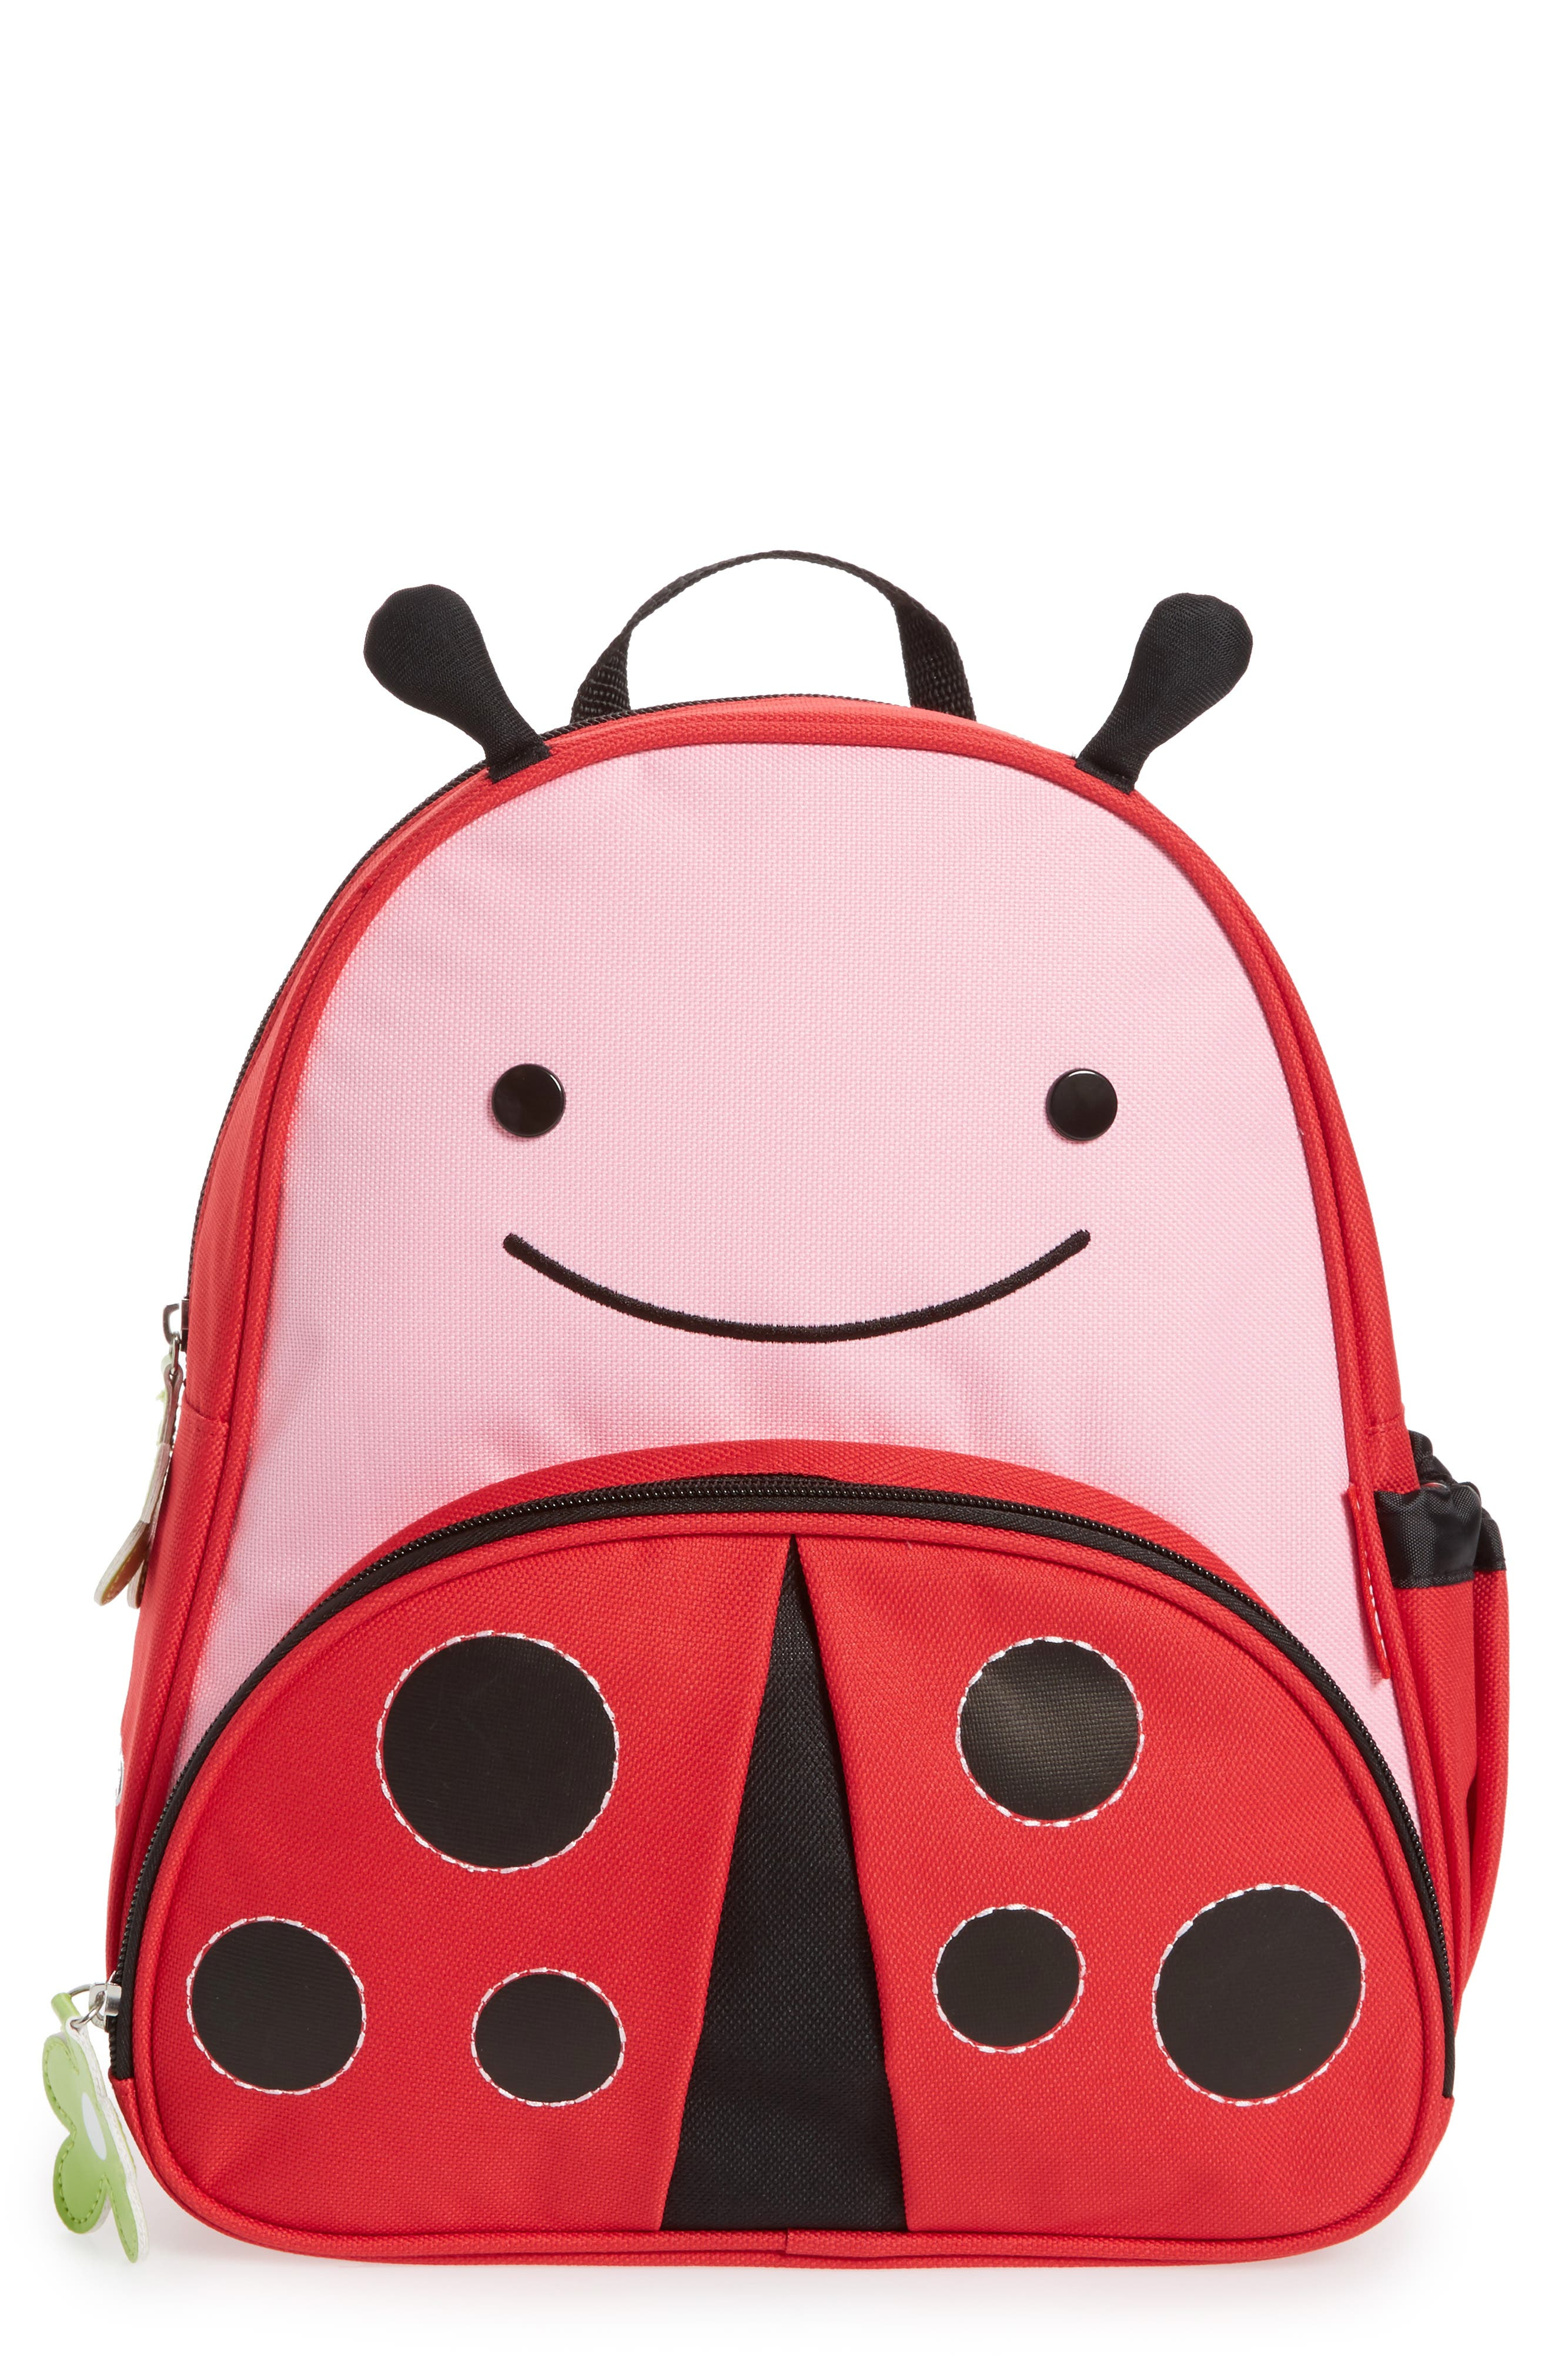 Ladybug Zoo Pack Backpack, Main, color, 651